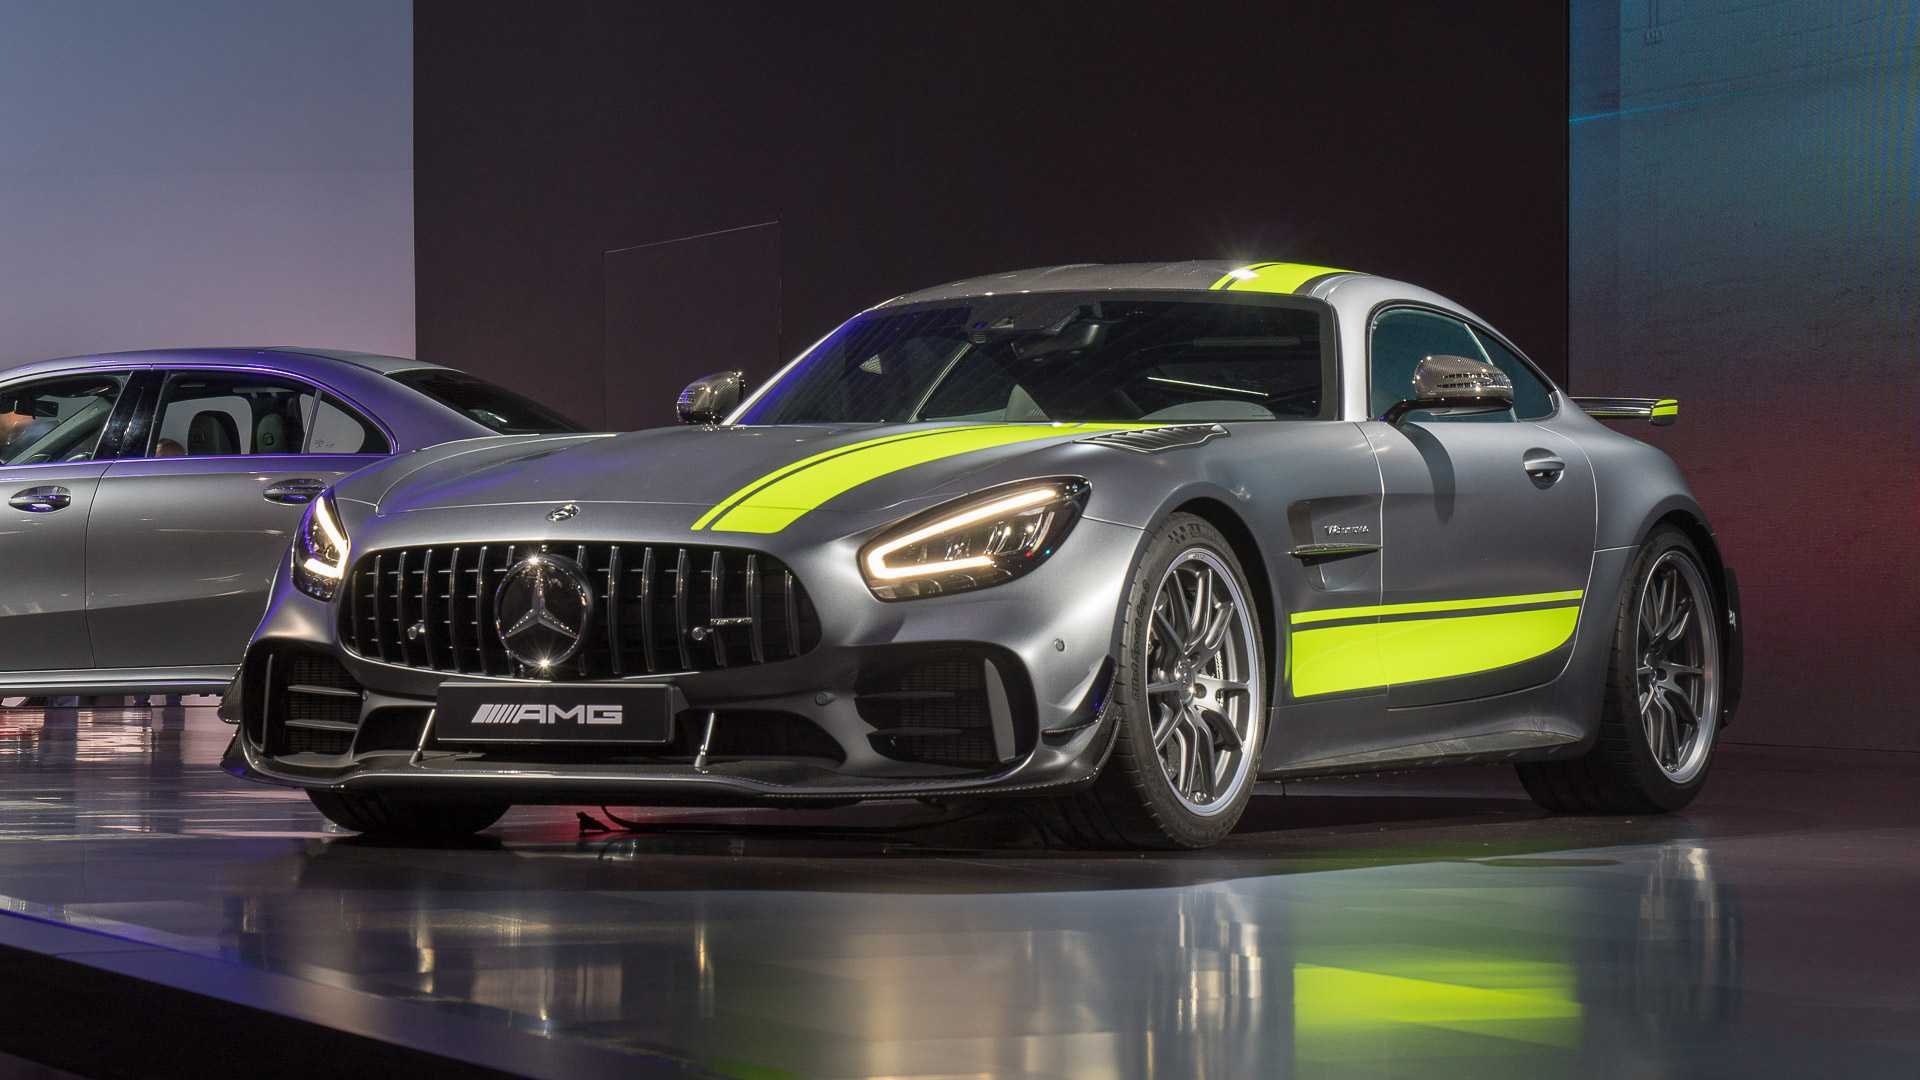 See The $200K Mercedes-AMG GT R Pro Lap The 'Ring In 7:06